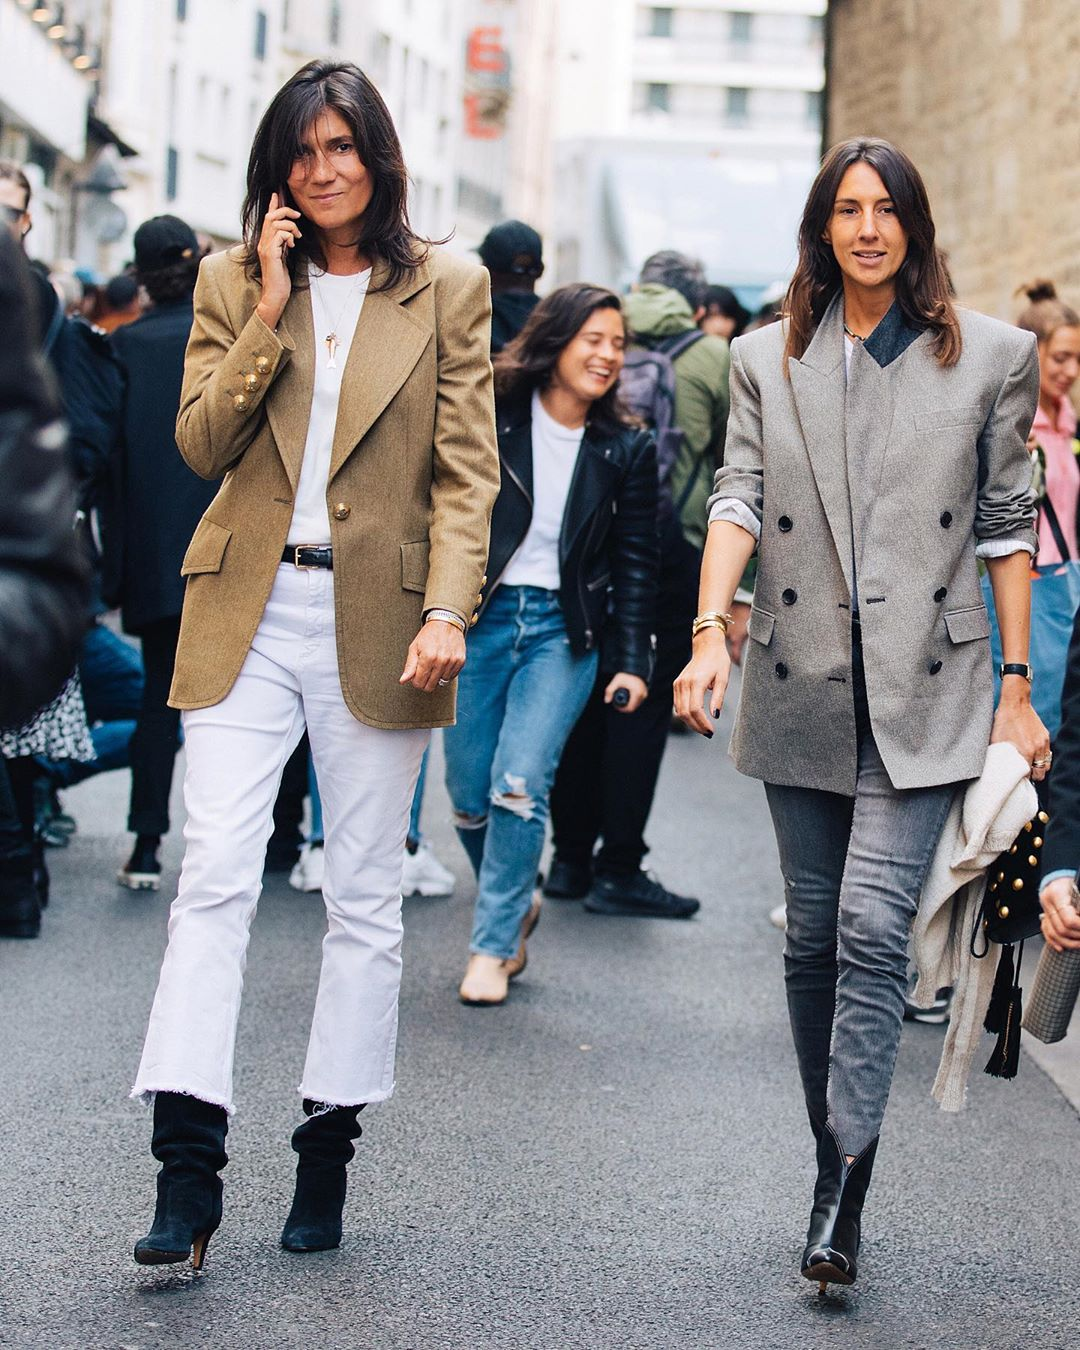 The Chicest Blazer to Wear This Fall